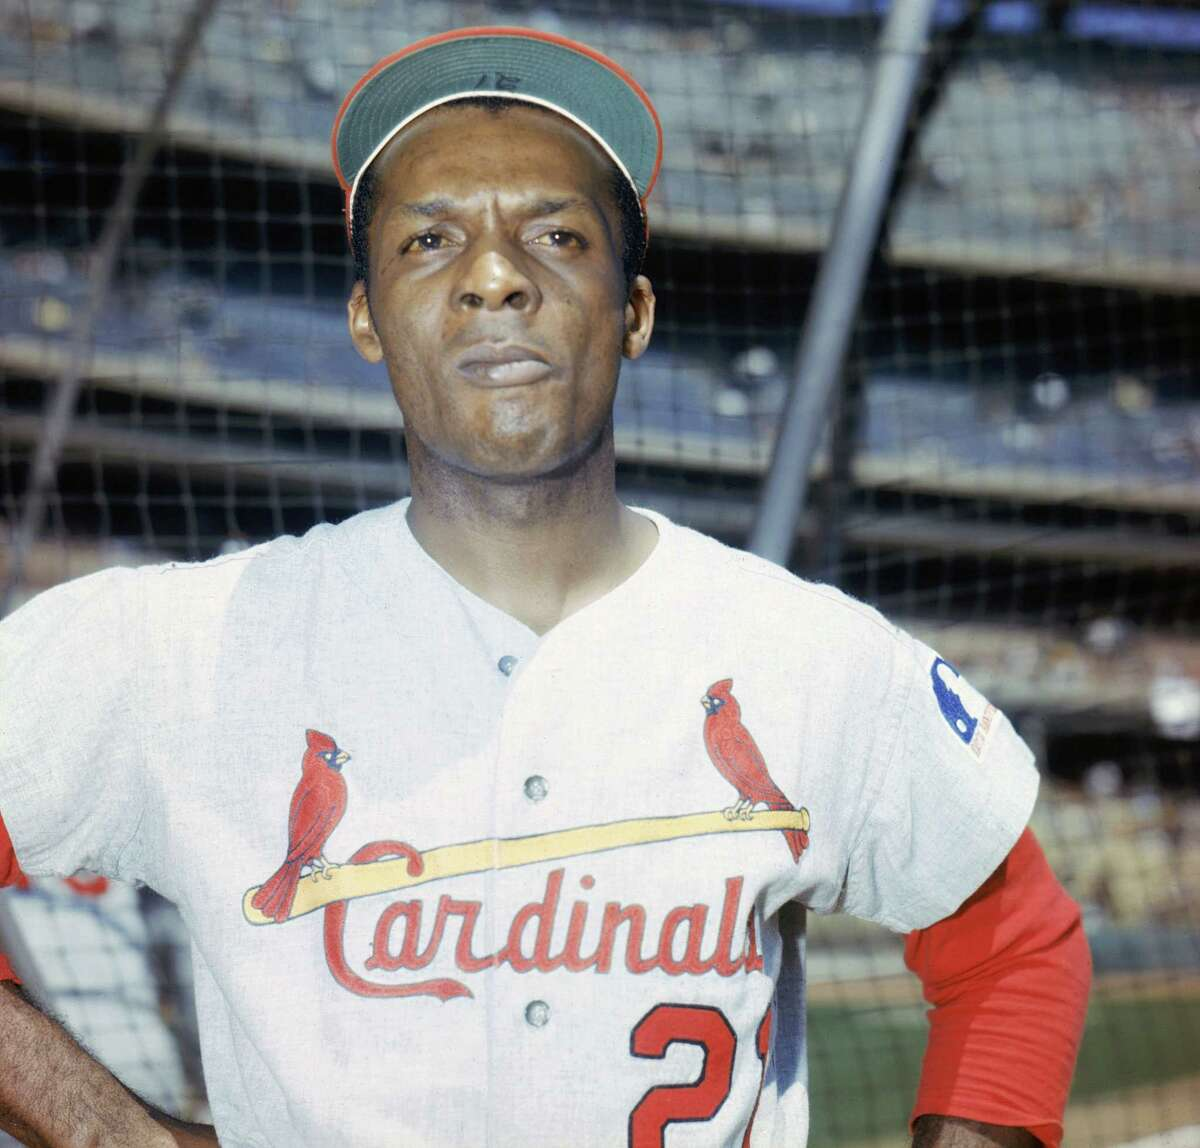 1970: Flood opens the gates While longtime St. Louis Cardinals outfielder Curt Flood didn't actually sign a free-agent contract during his 15-year career, his refusal to accept a trade to the moribund Philadelphia Phillies following the 1969 season led to a challenge of Major League Baseball's reserve clause, eventually opening the door for free agency in 1975.